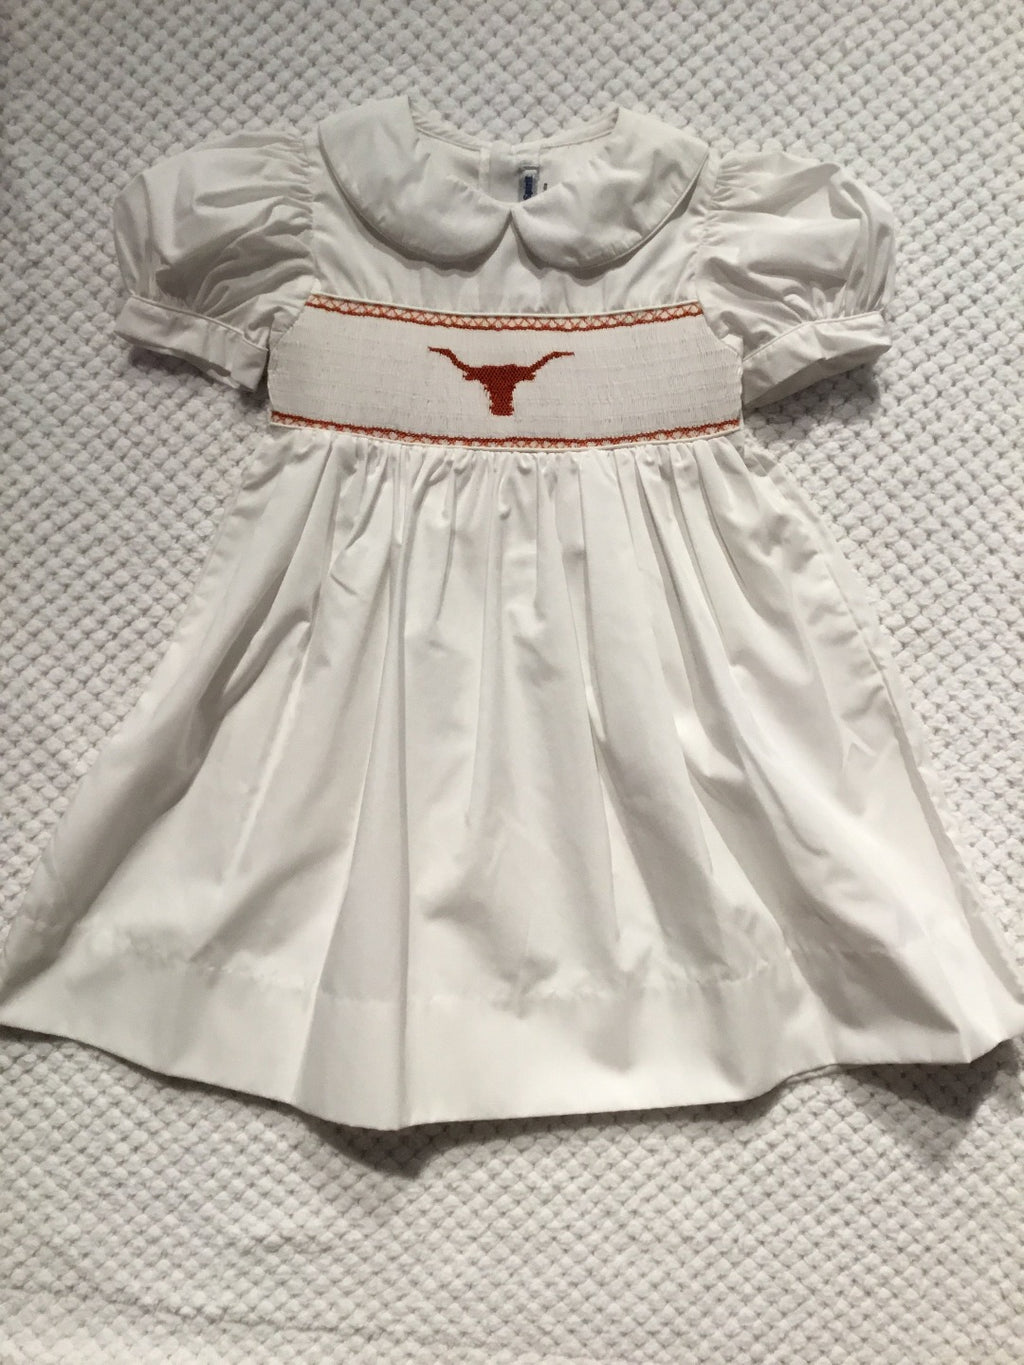 Smocked Longhorn Dress